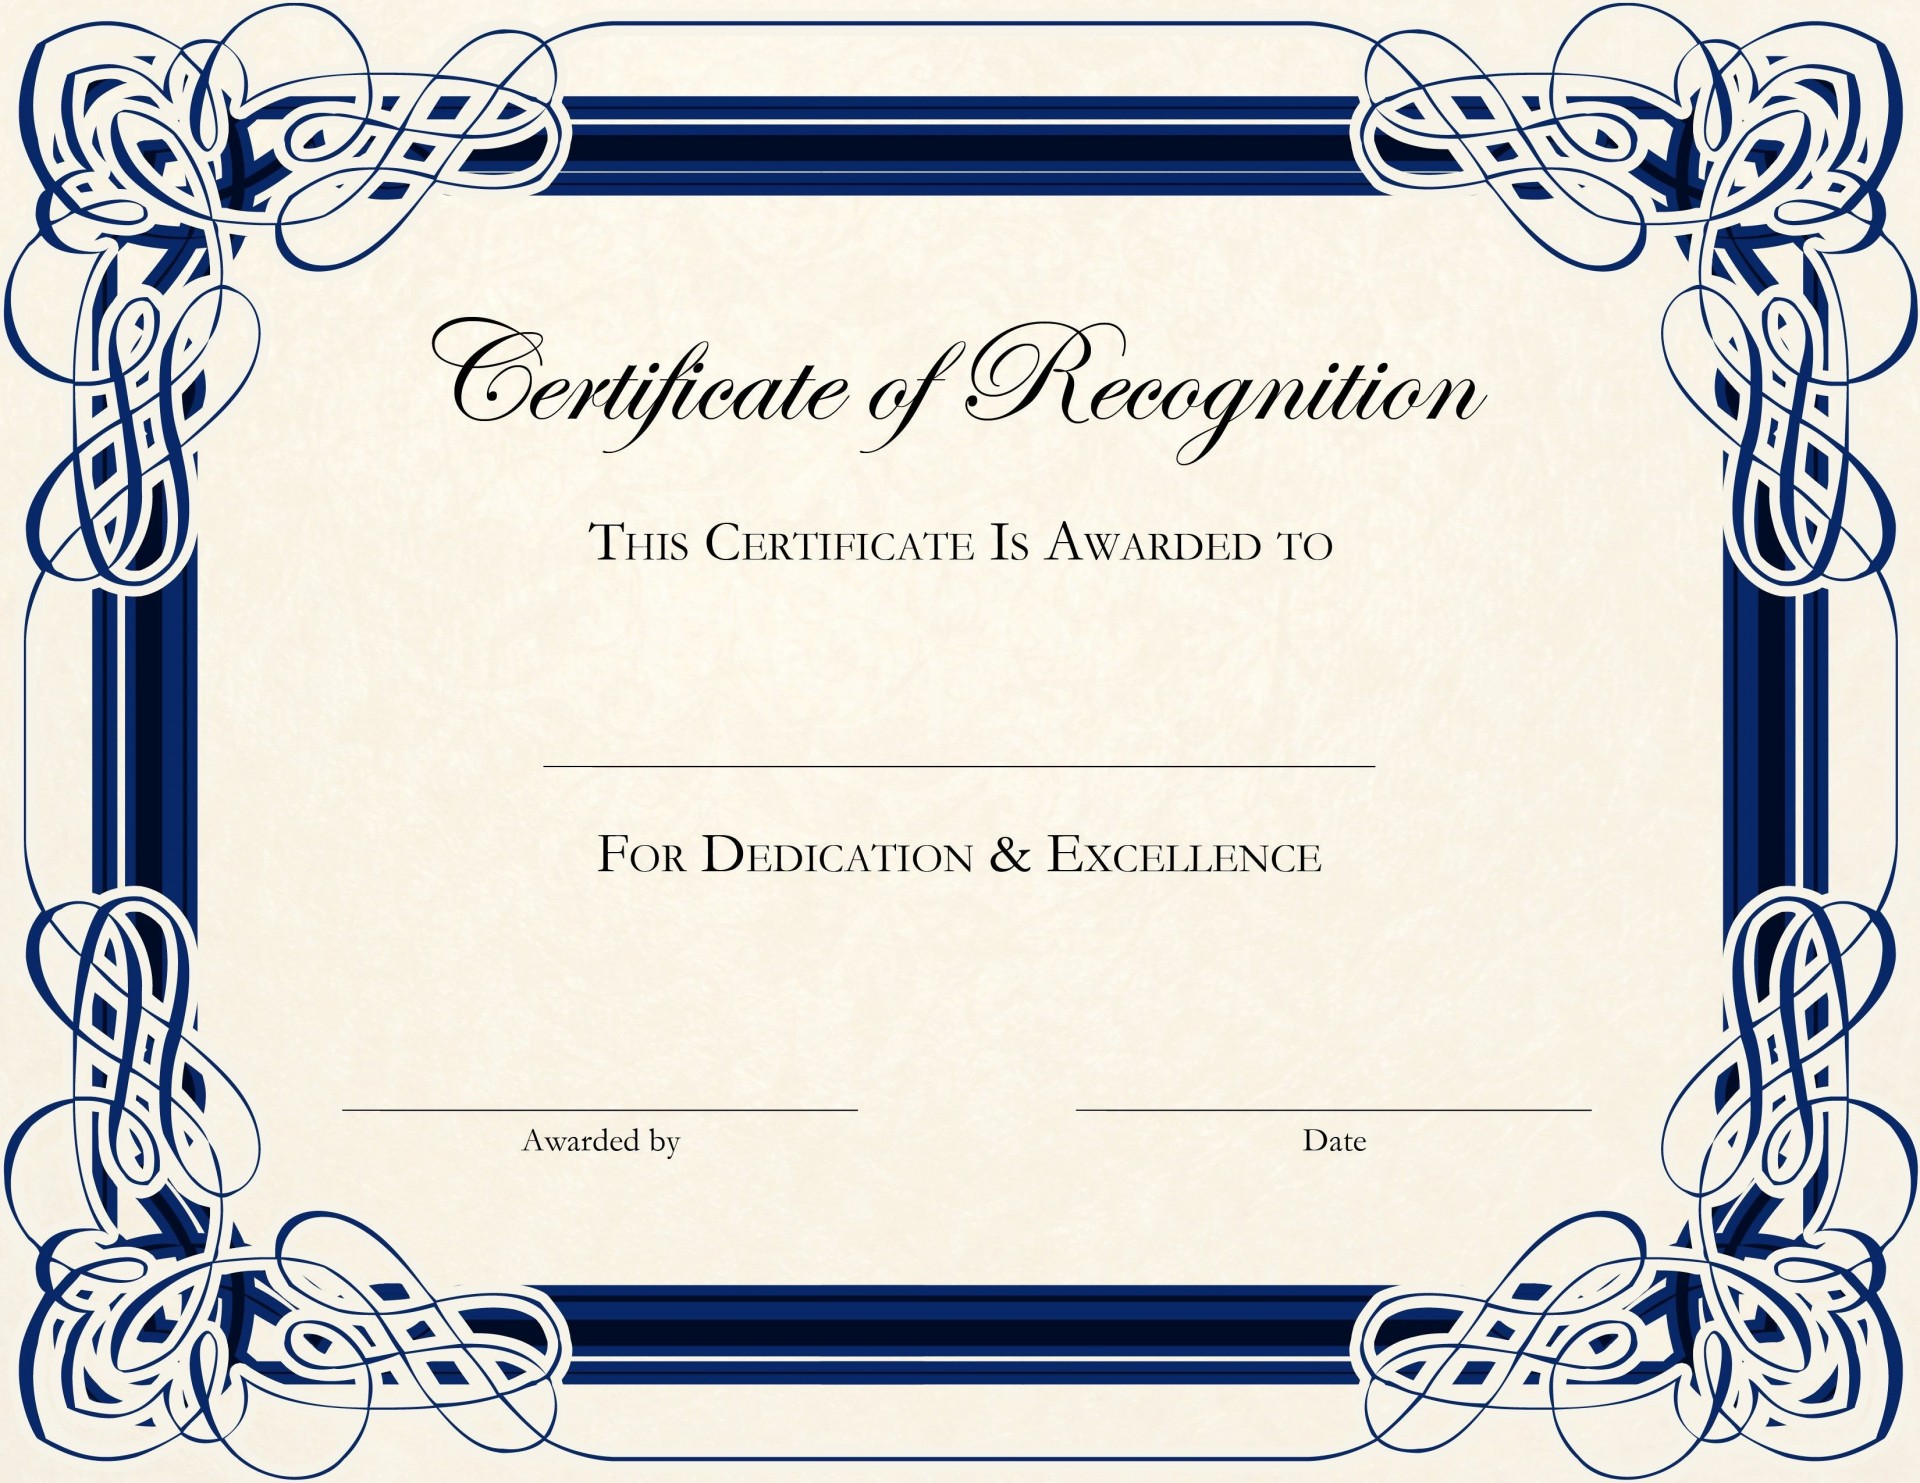 002 Fantastic Certificate Of Award Template Word Free Concept 1920